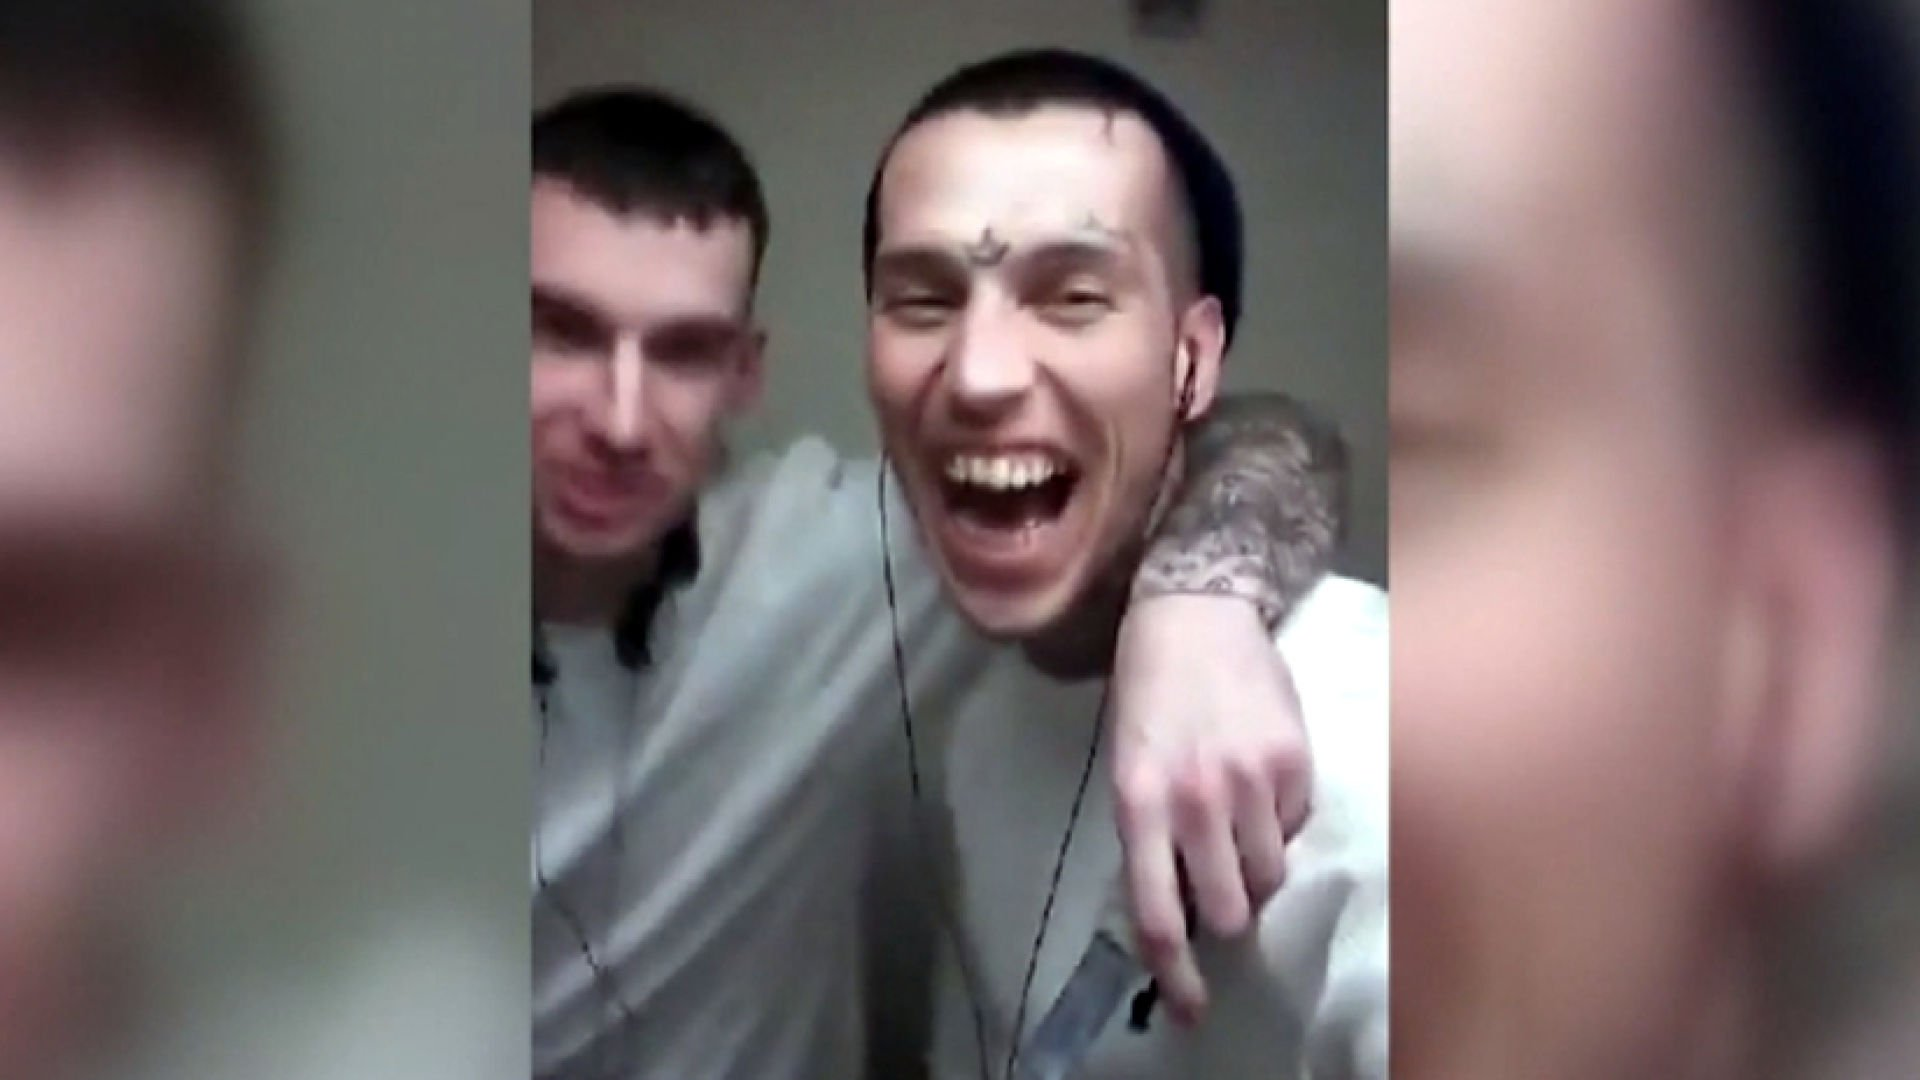 Investigation underway after Facebook live posted from prison.